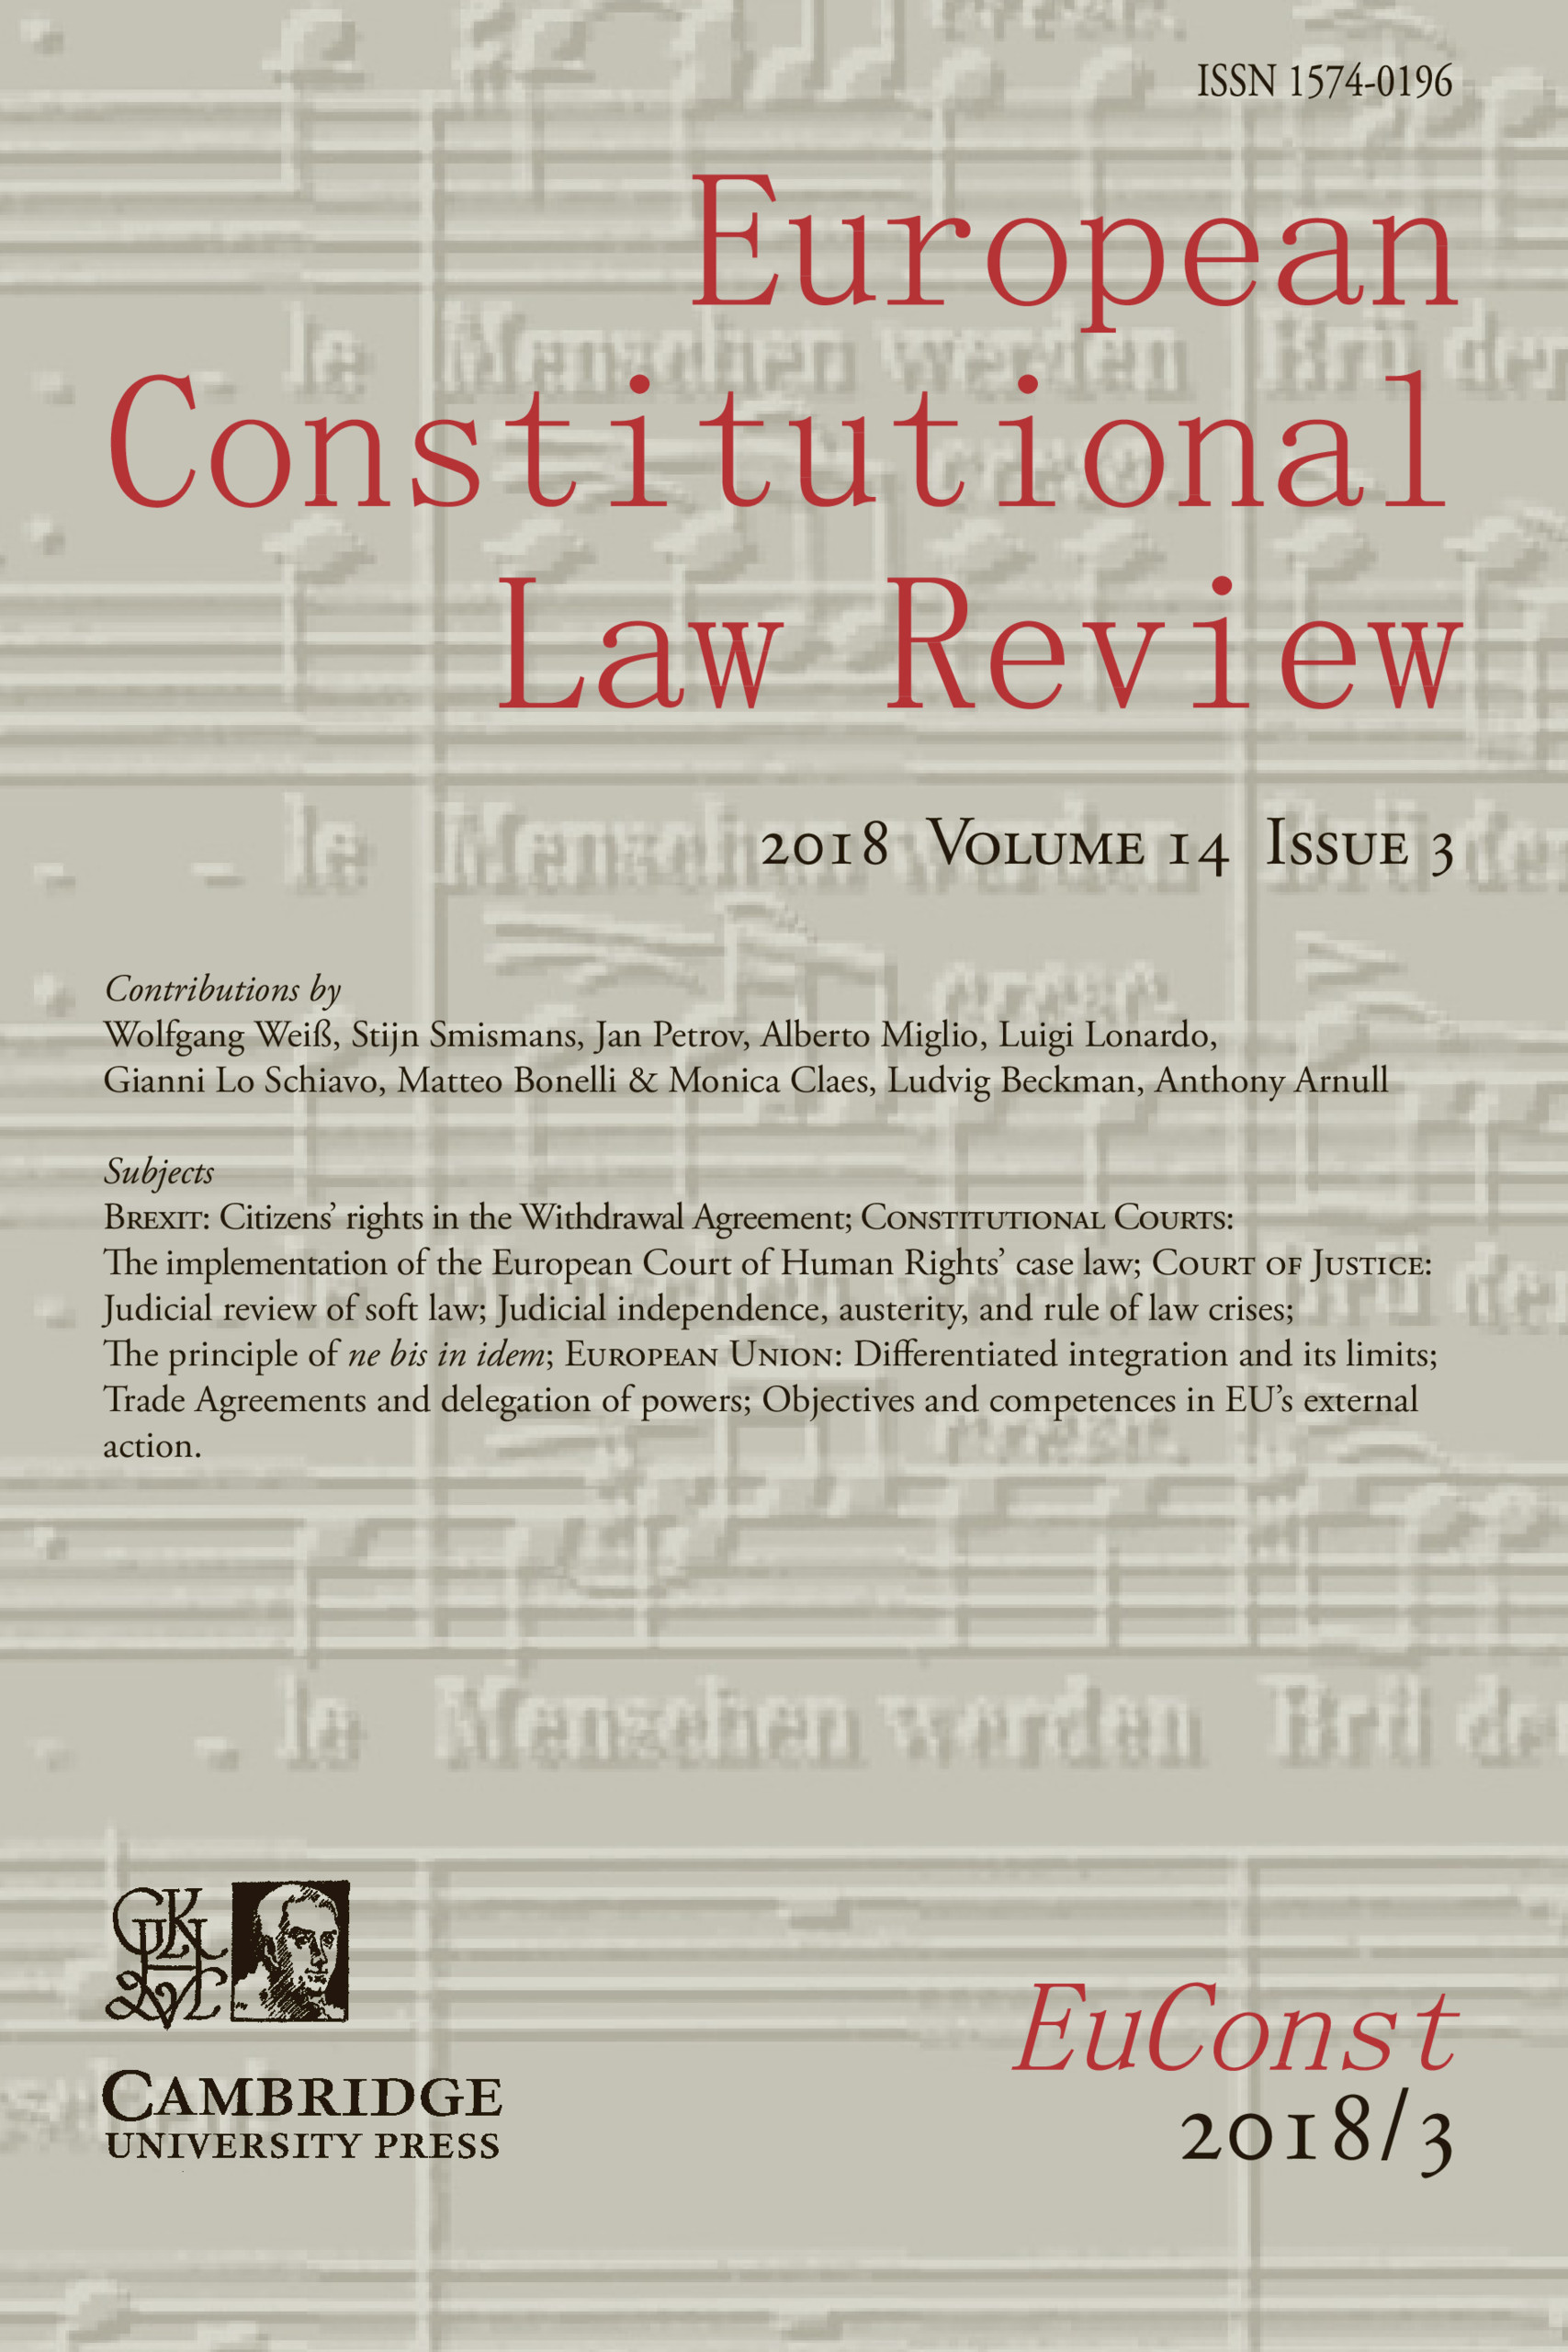 European Constitutional Law Review | Latest issue | Cambridge Core